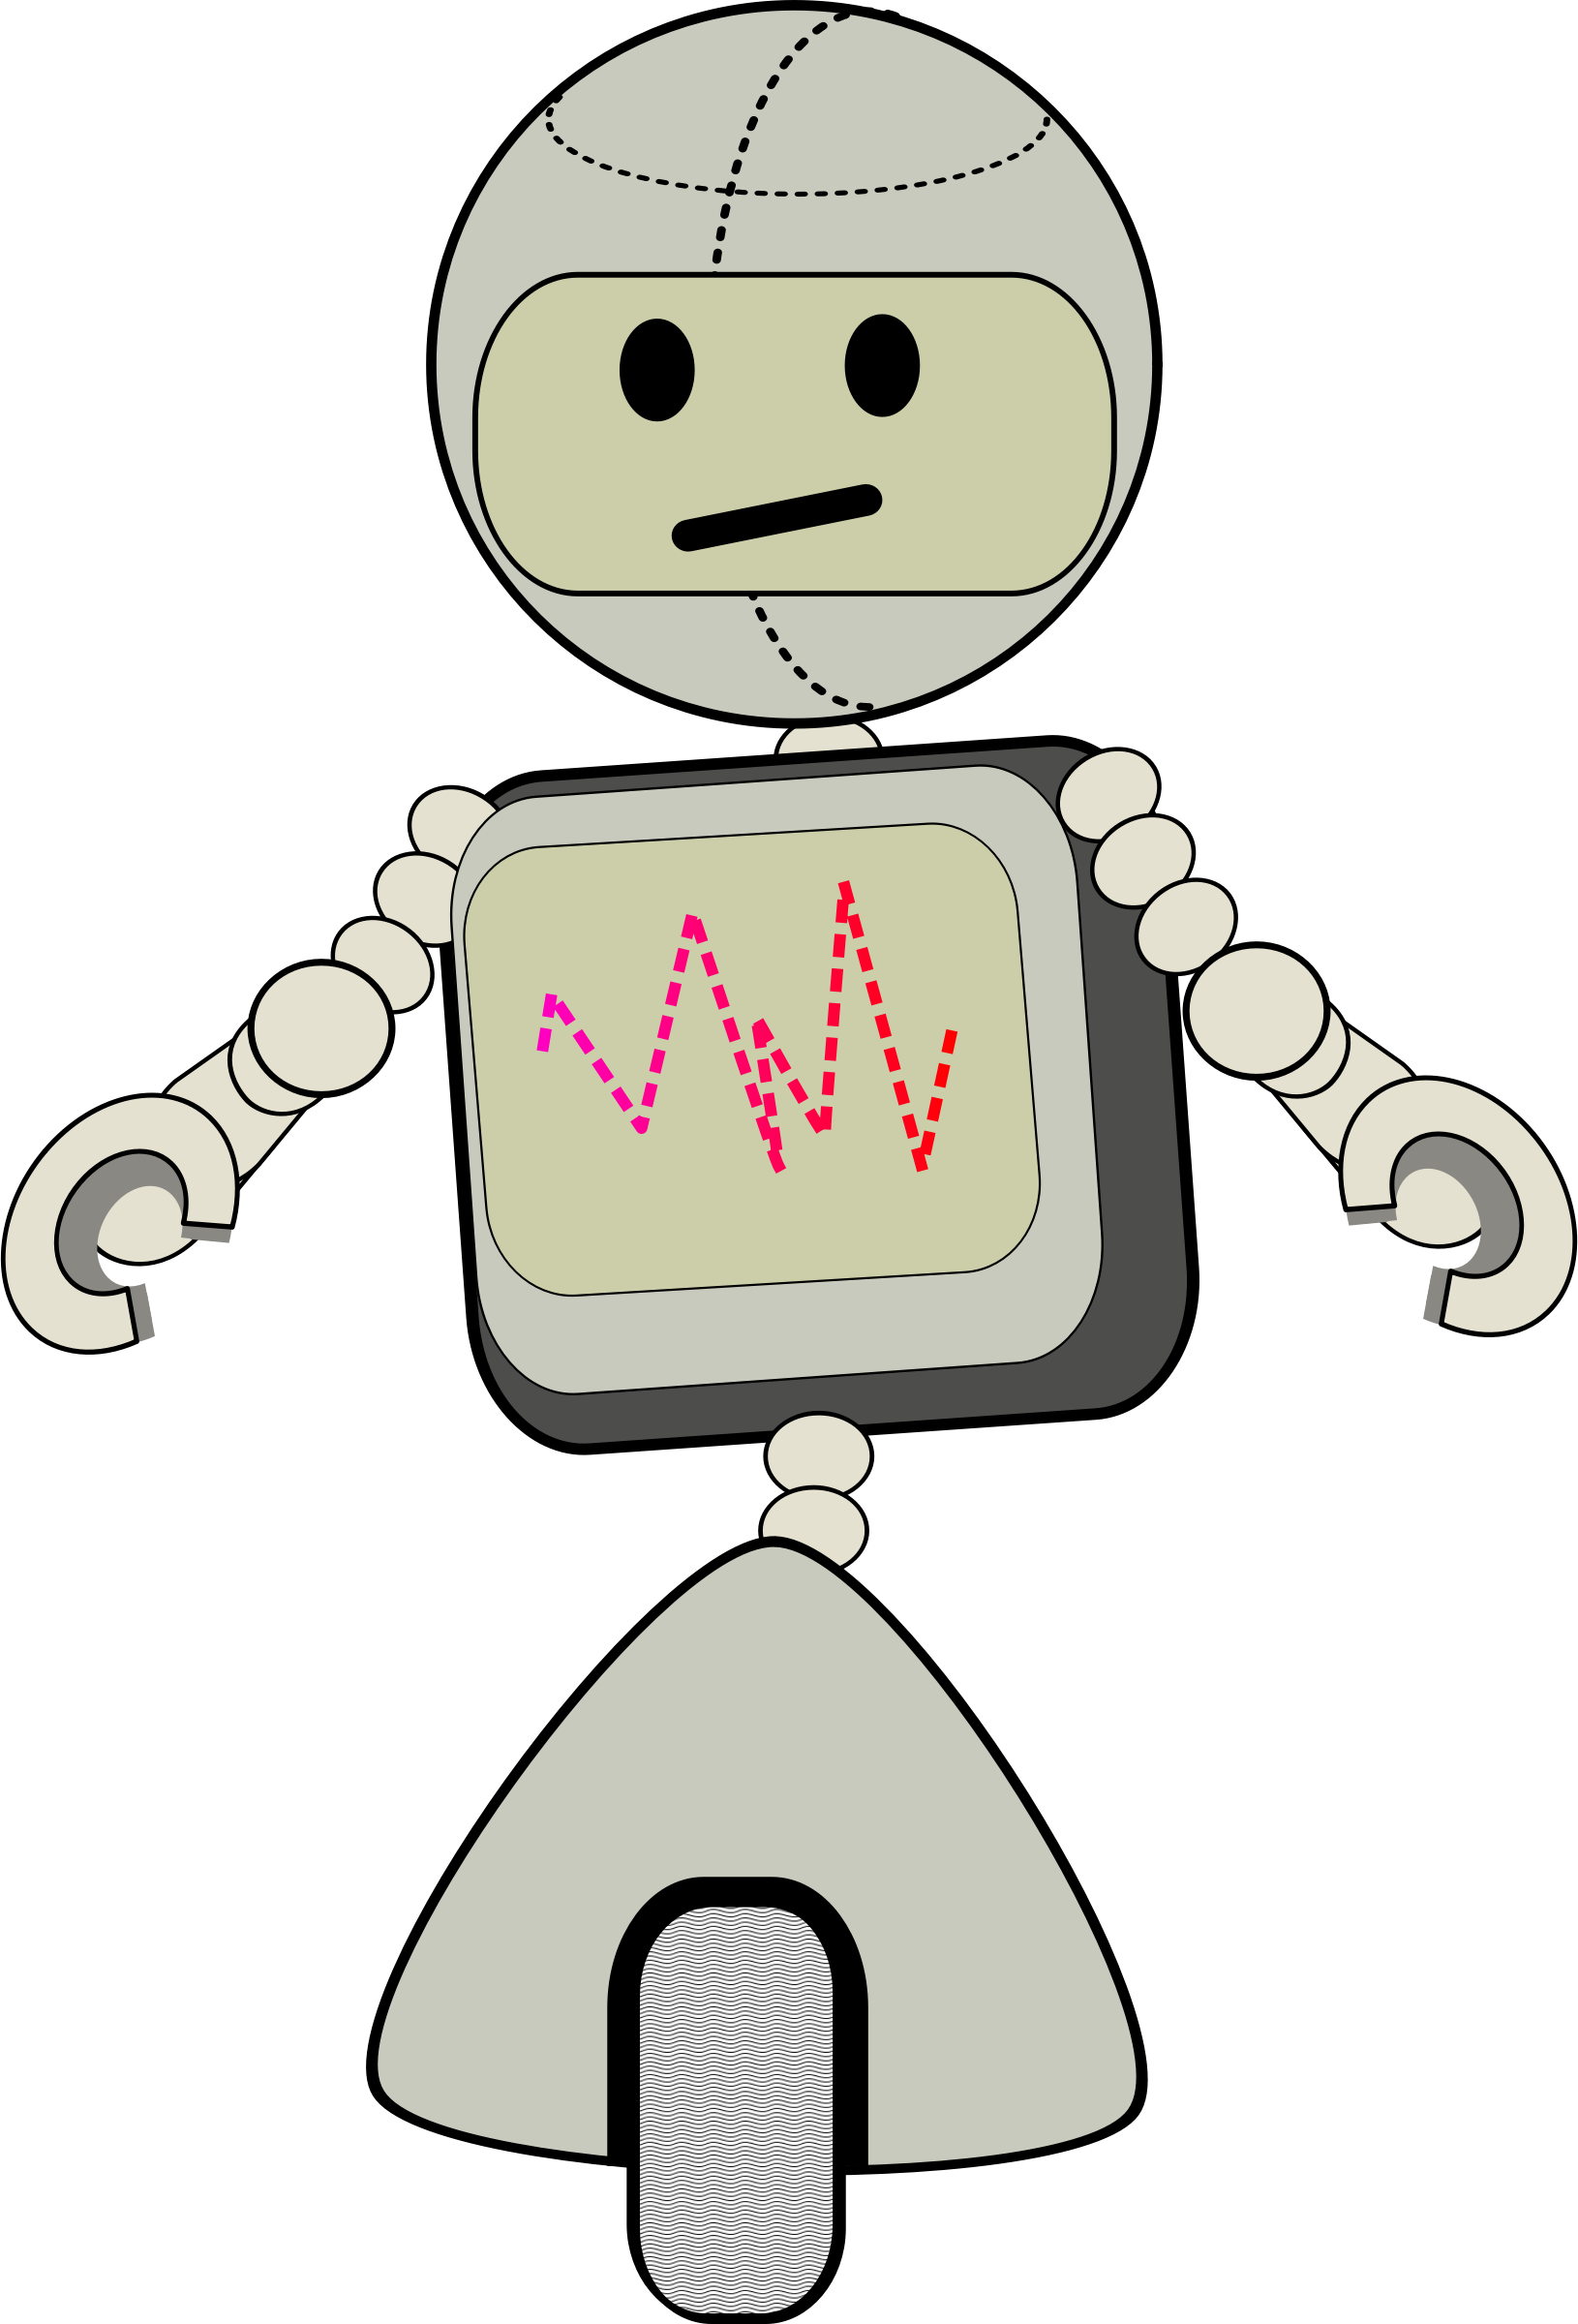 svg royalty free stock Tall clipart. Robot big image png